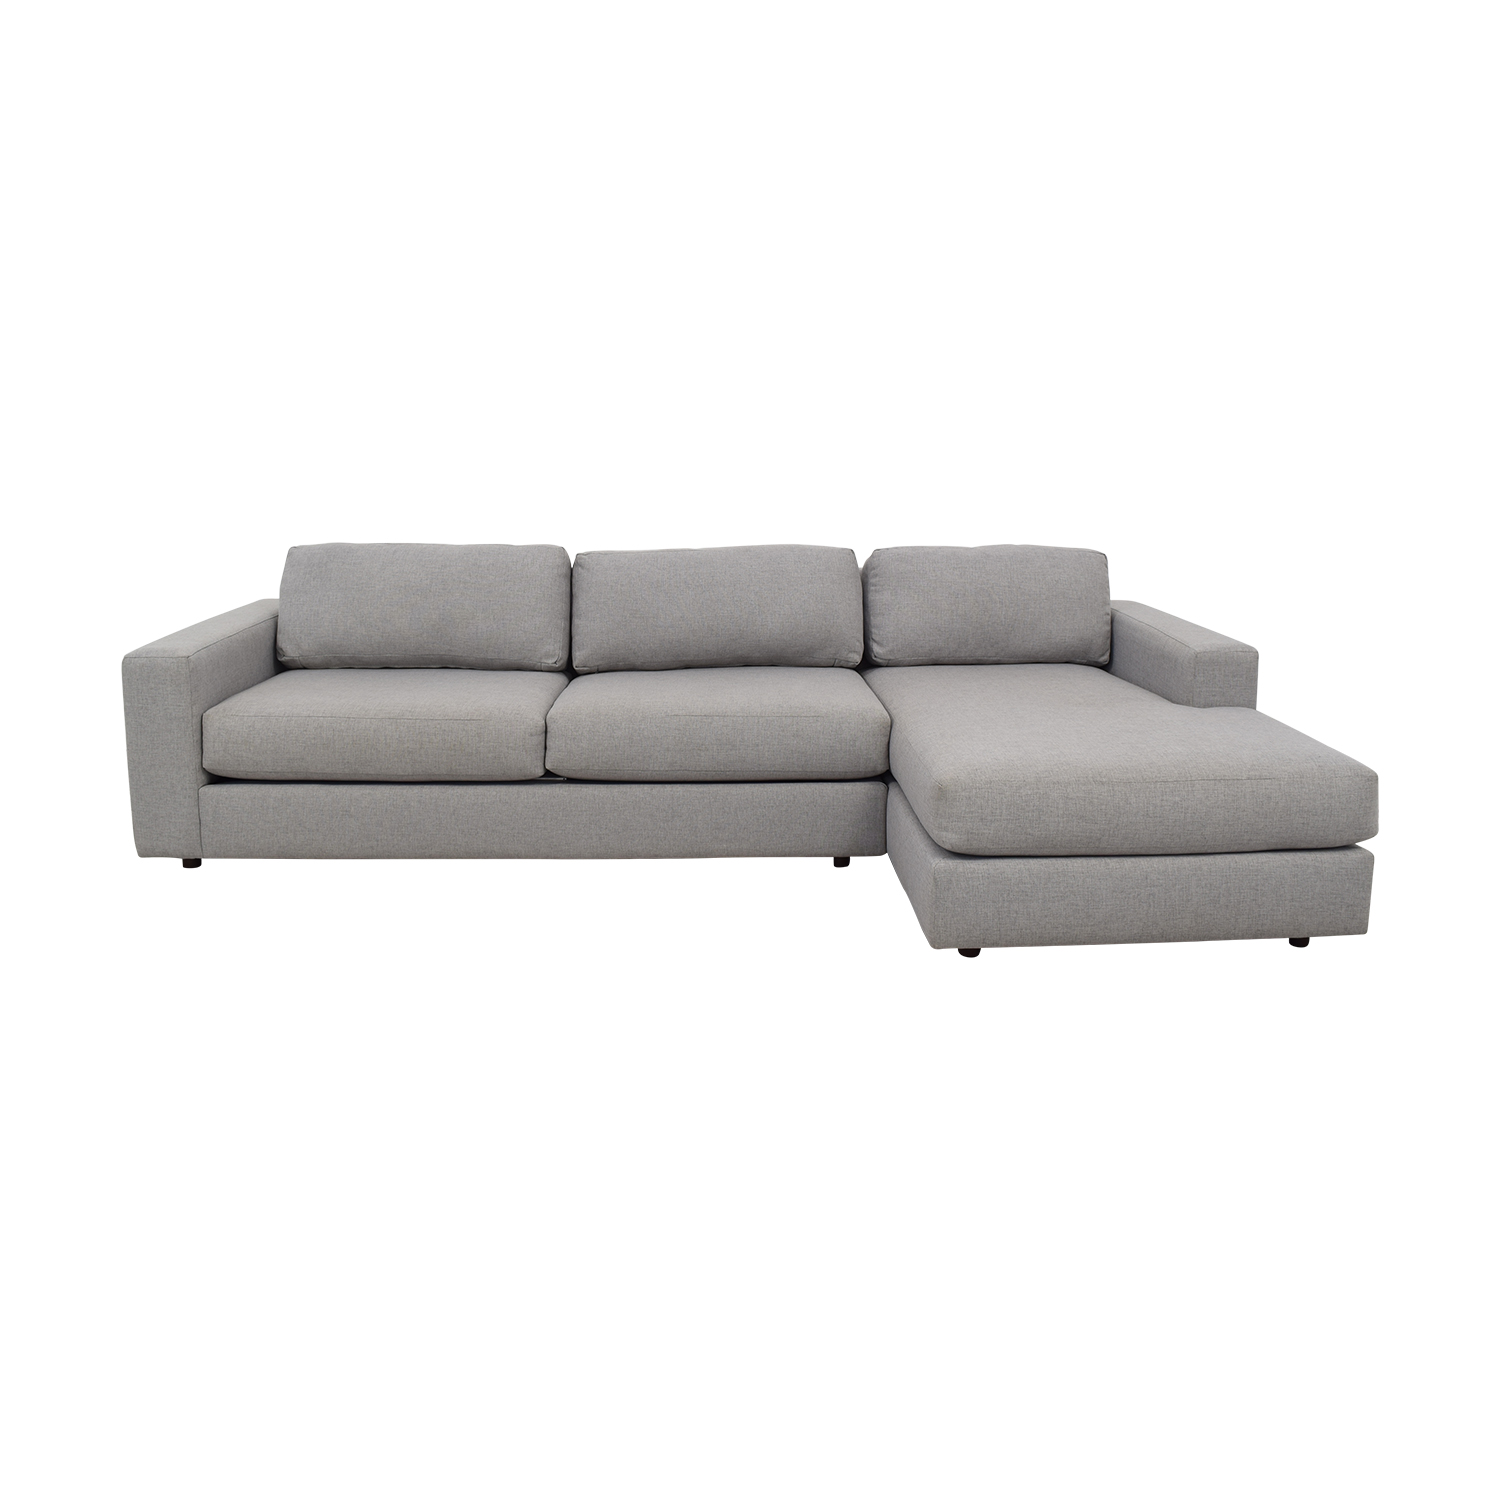 West Elm Urban Chaise Sectional Sofa / Sofas